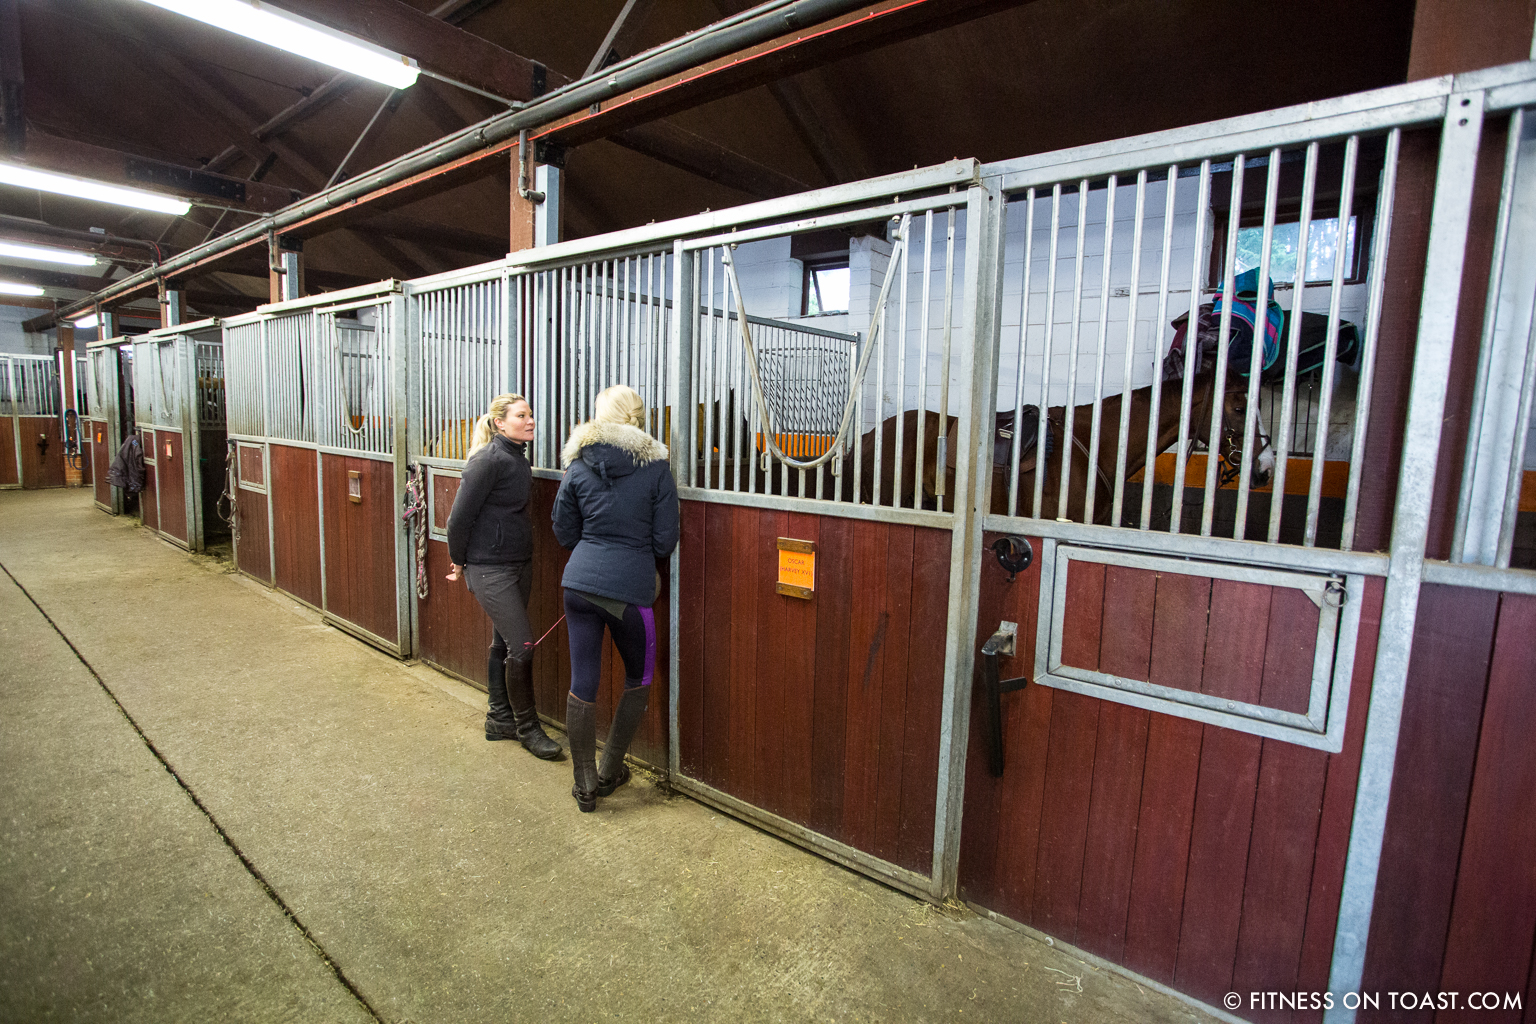 The benefits of horse riding fitness on toast